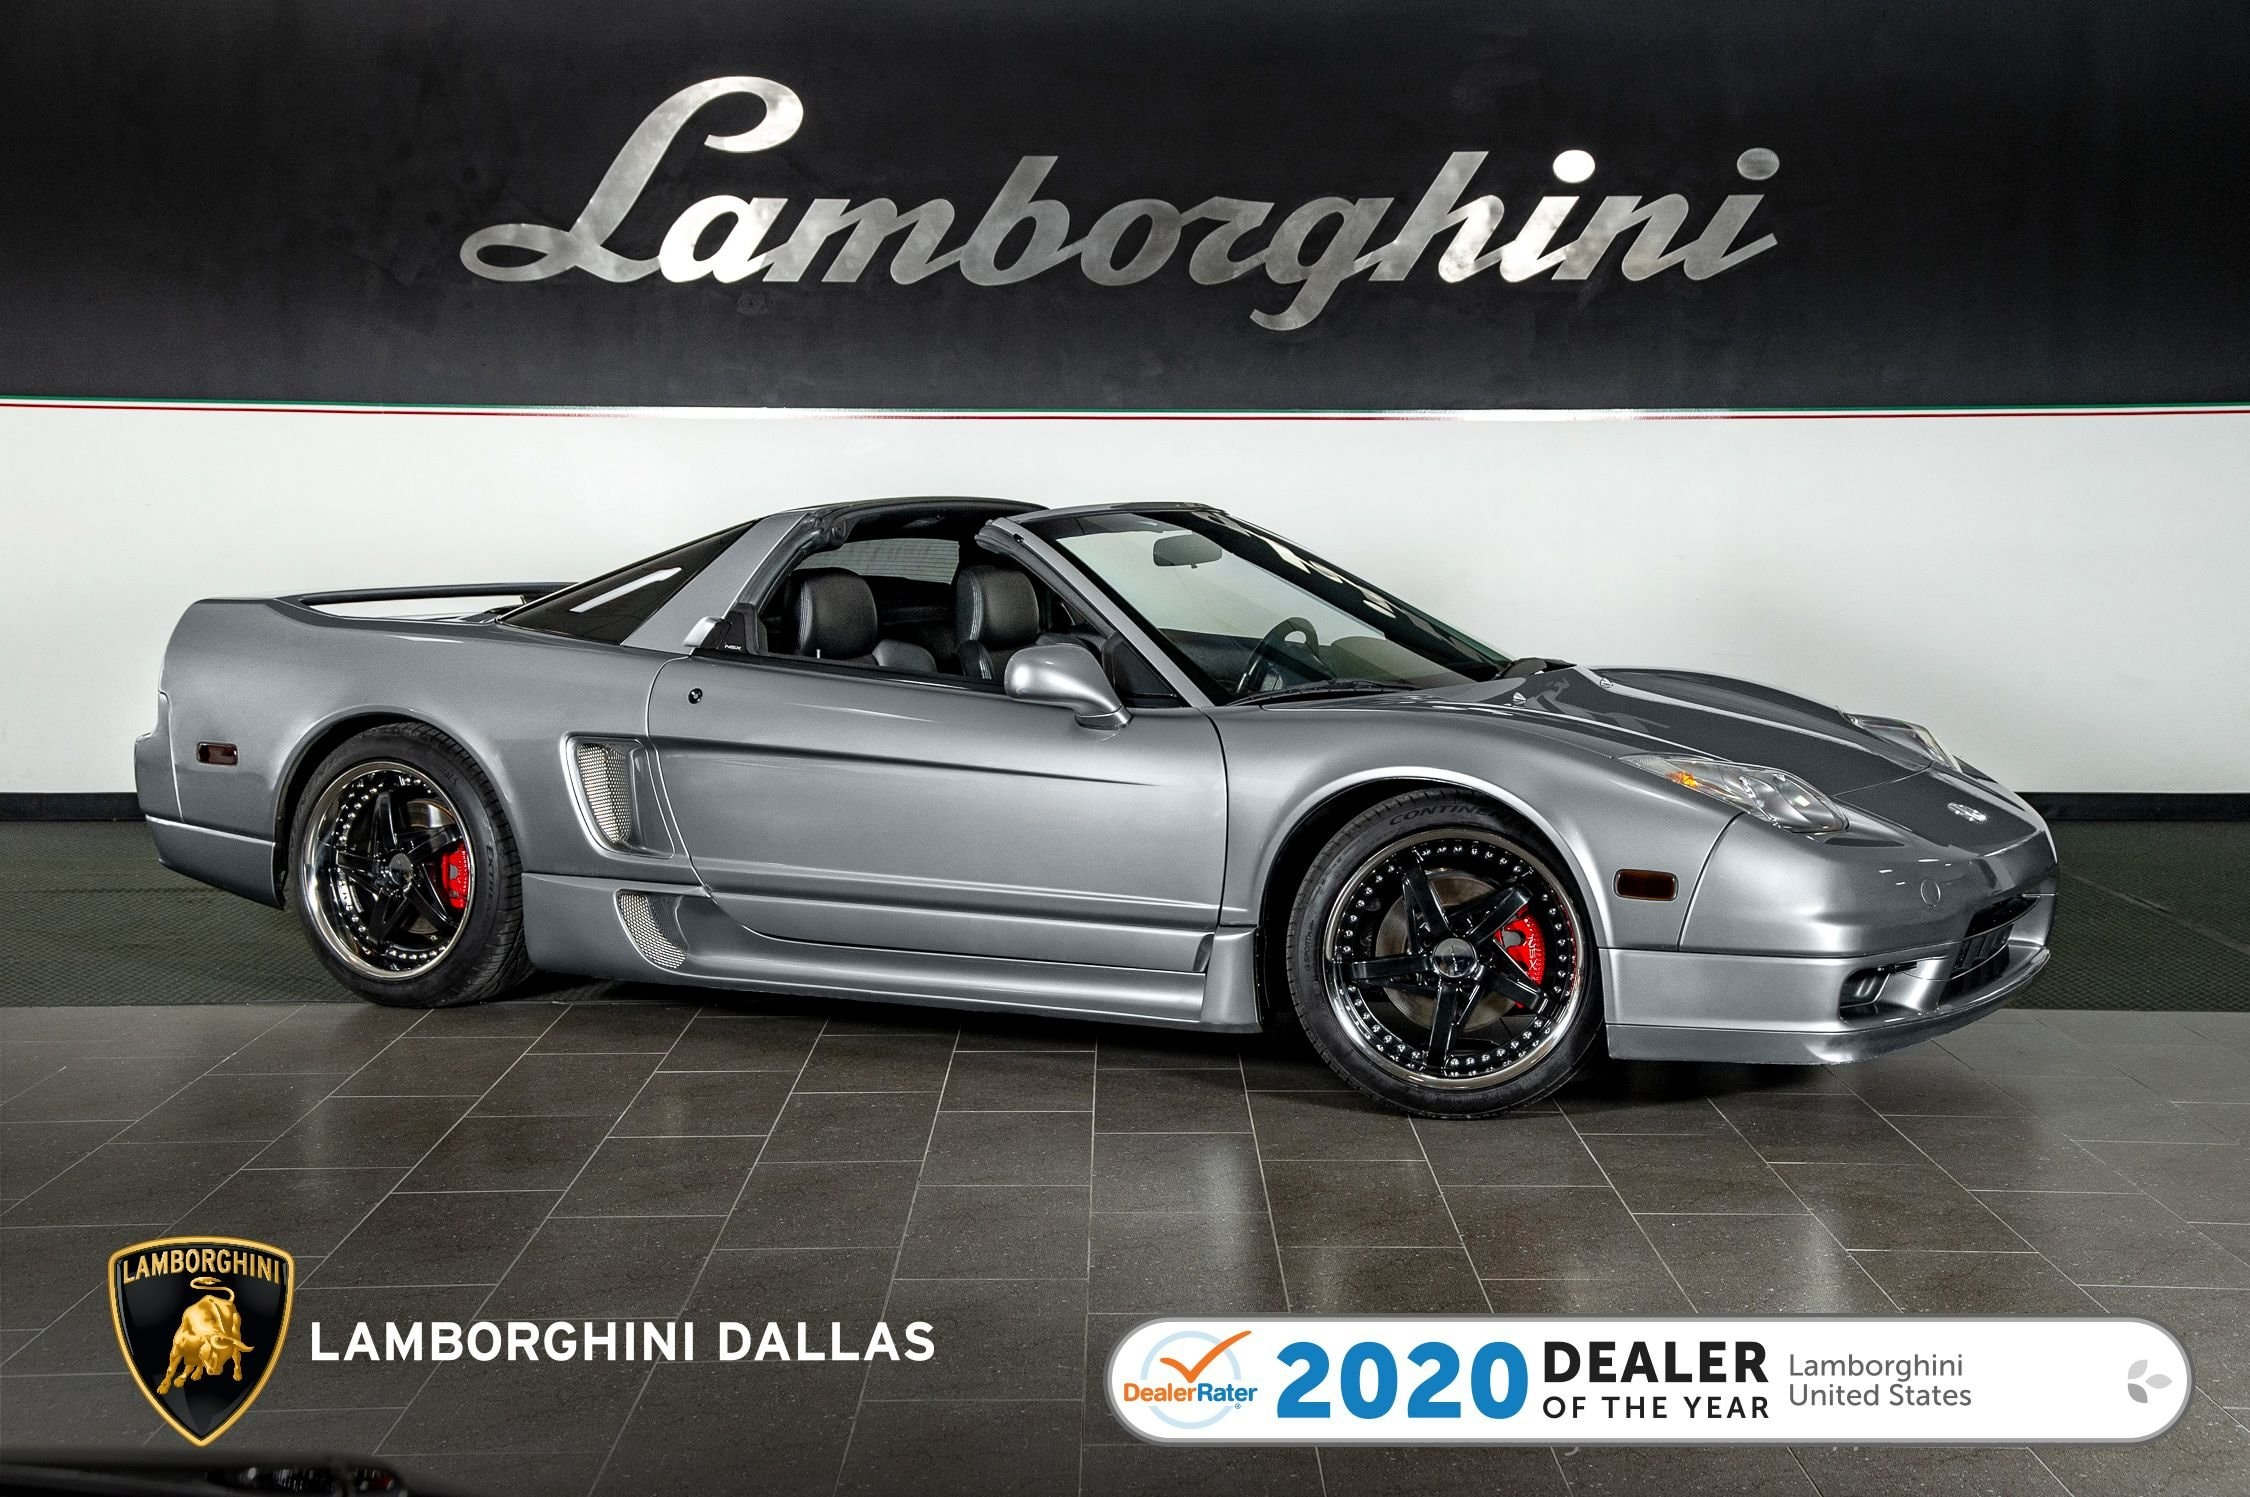 used 2004 Acura NSX car, priced at $92,999